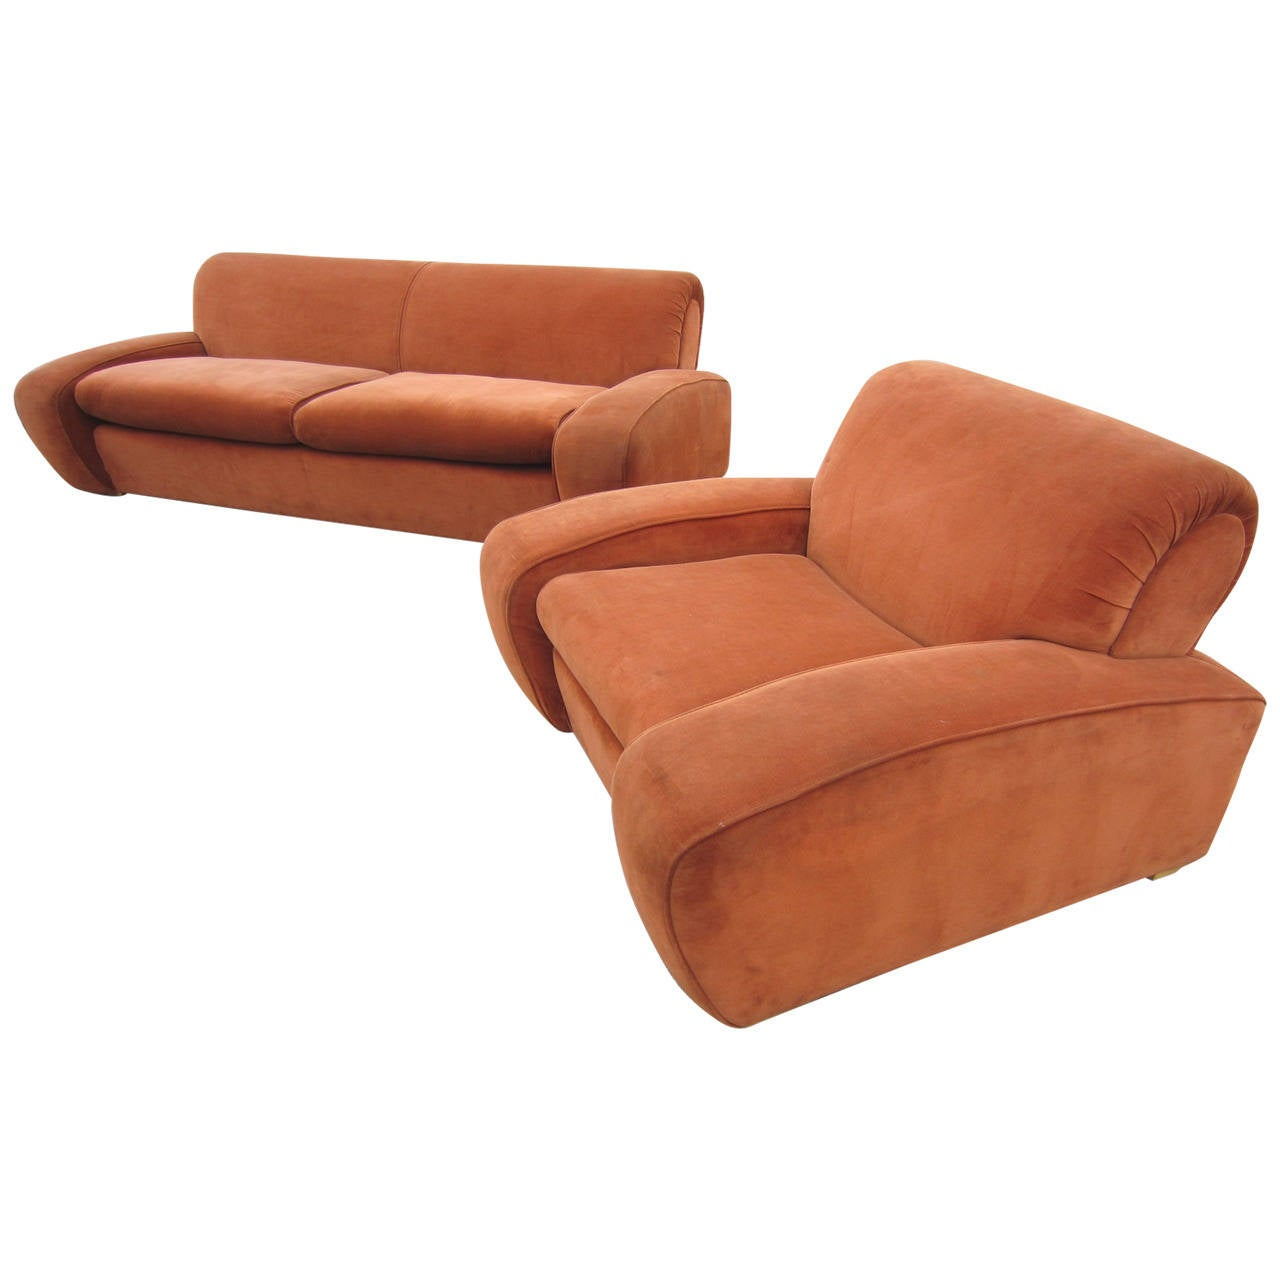 Paul Frankl Sofa ~ Art deco paul frankl quot speed lounge chair and sofa set